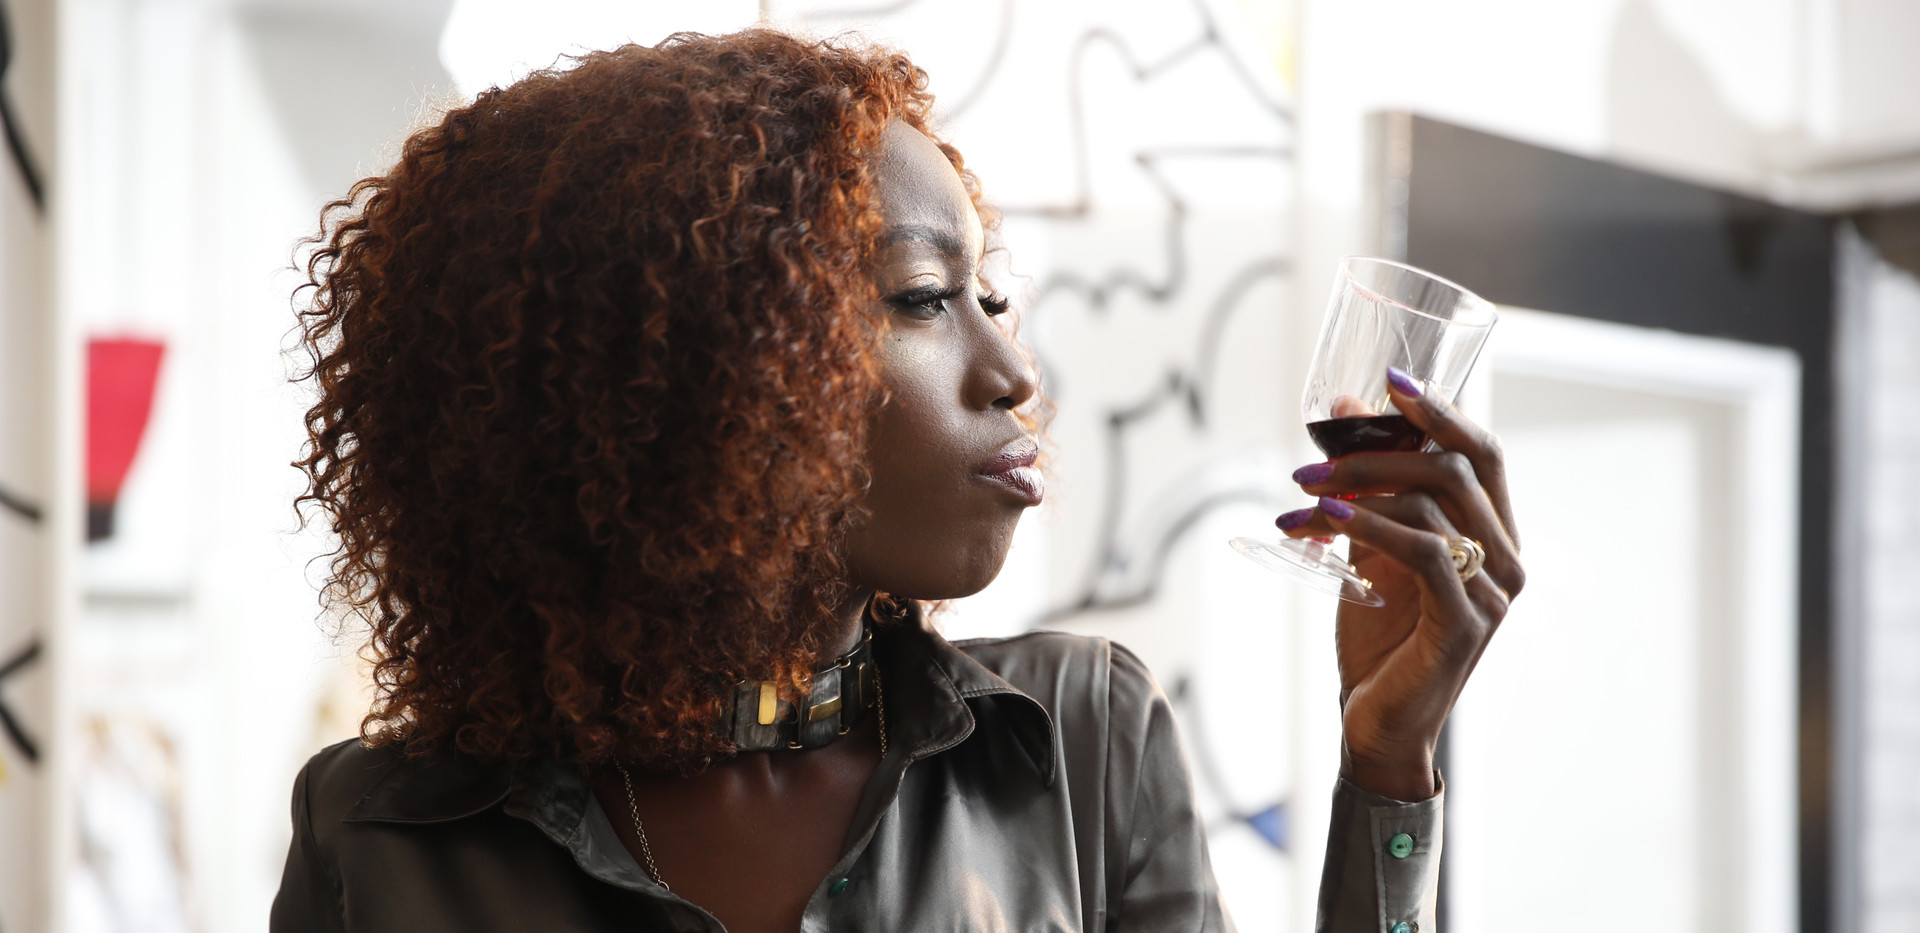 Liz Ogumbo Wine fashion photography NARA